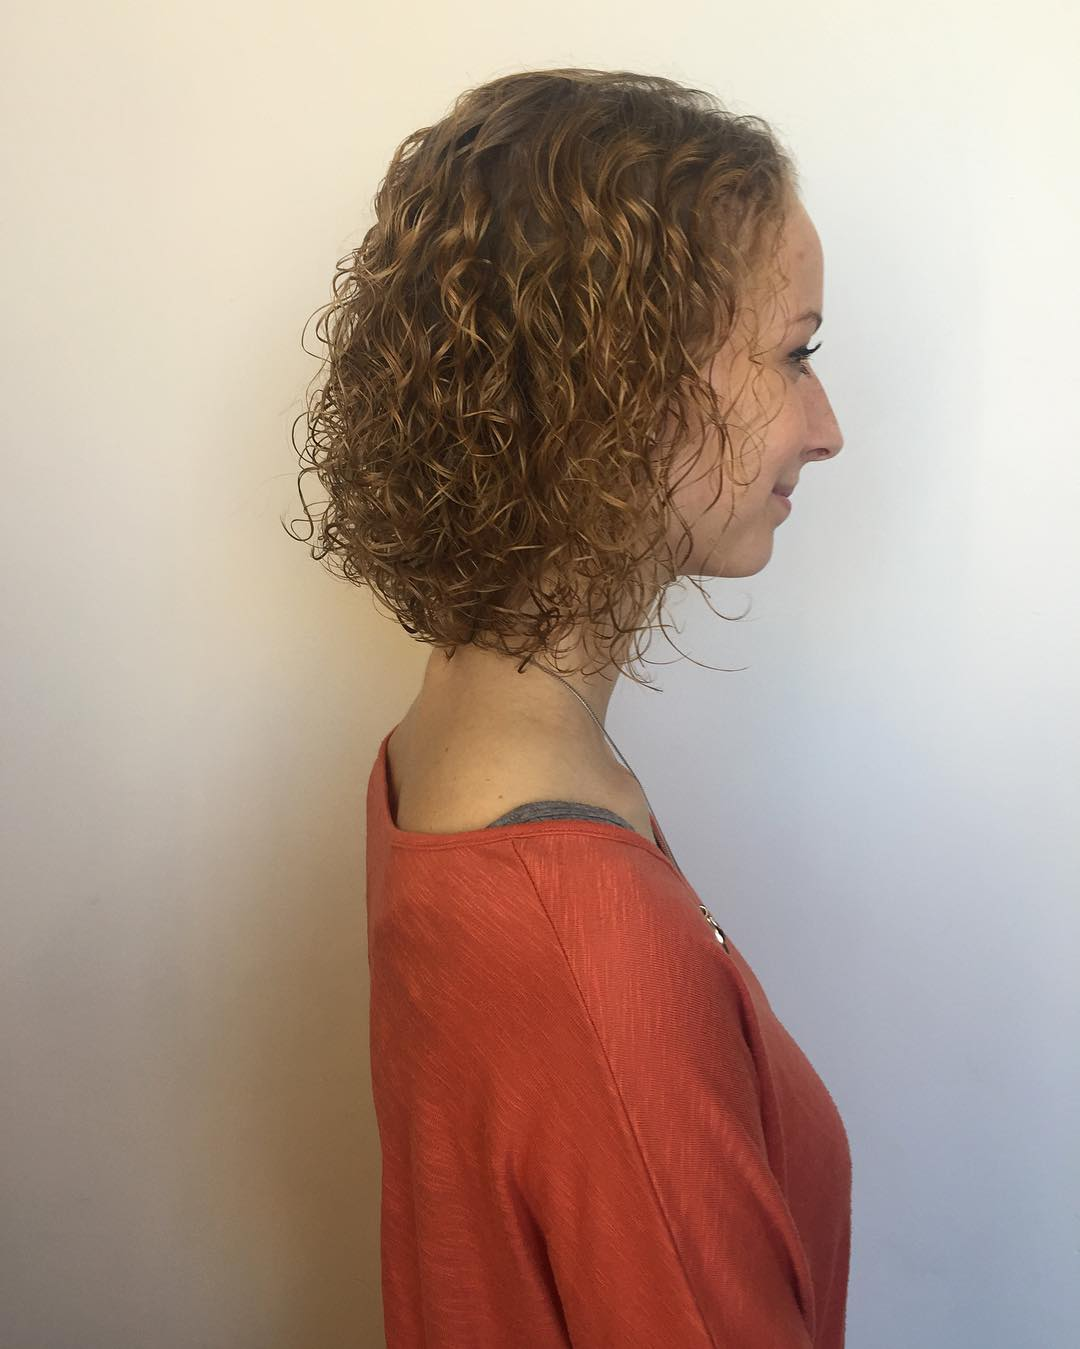 curly hair, curly hair style, curly haircut, womens curls